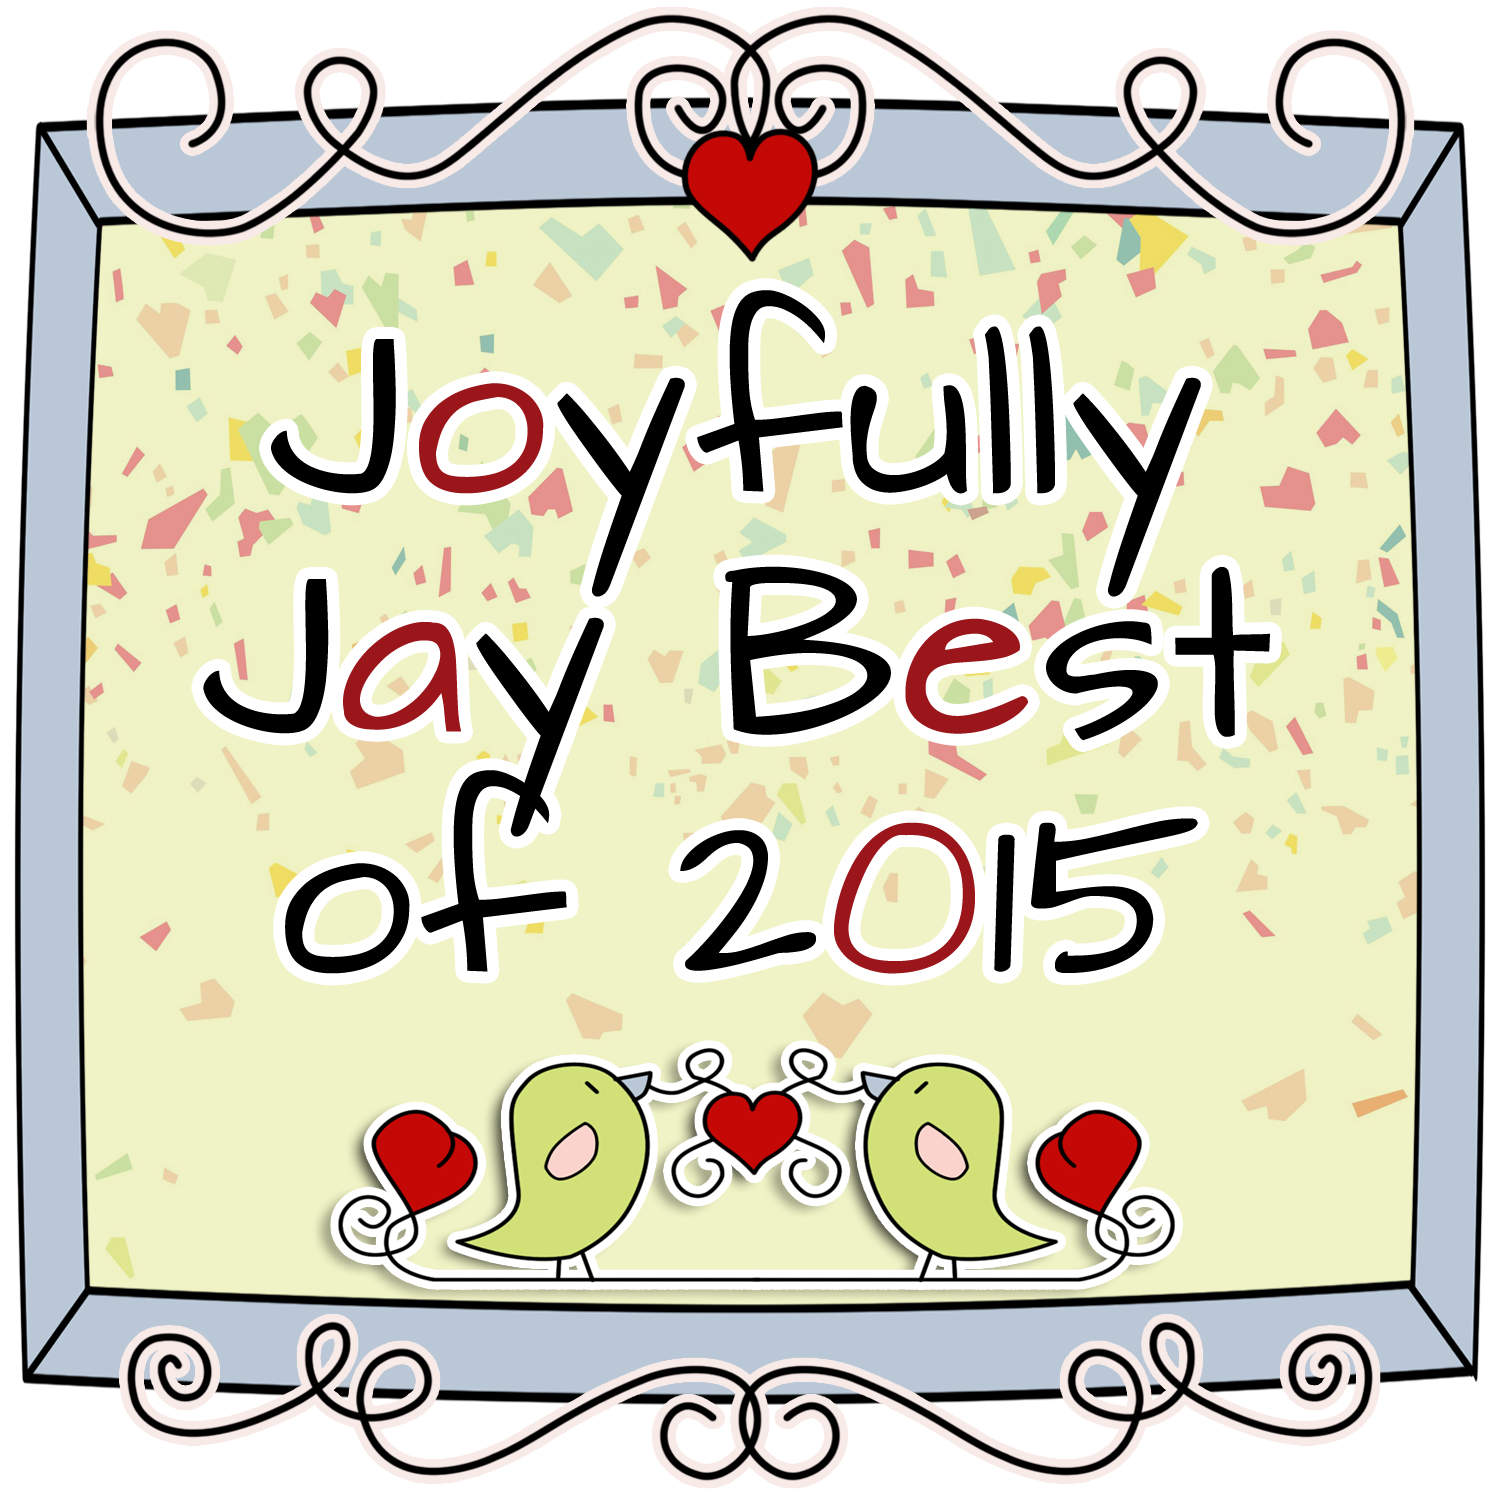 Crissy's Best of 2015